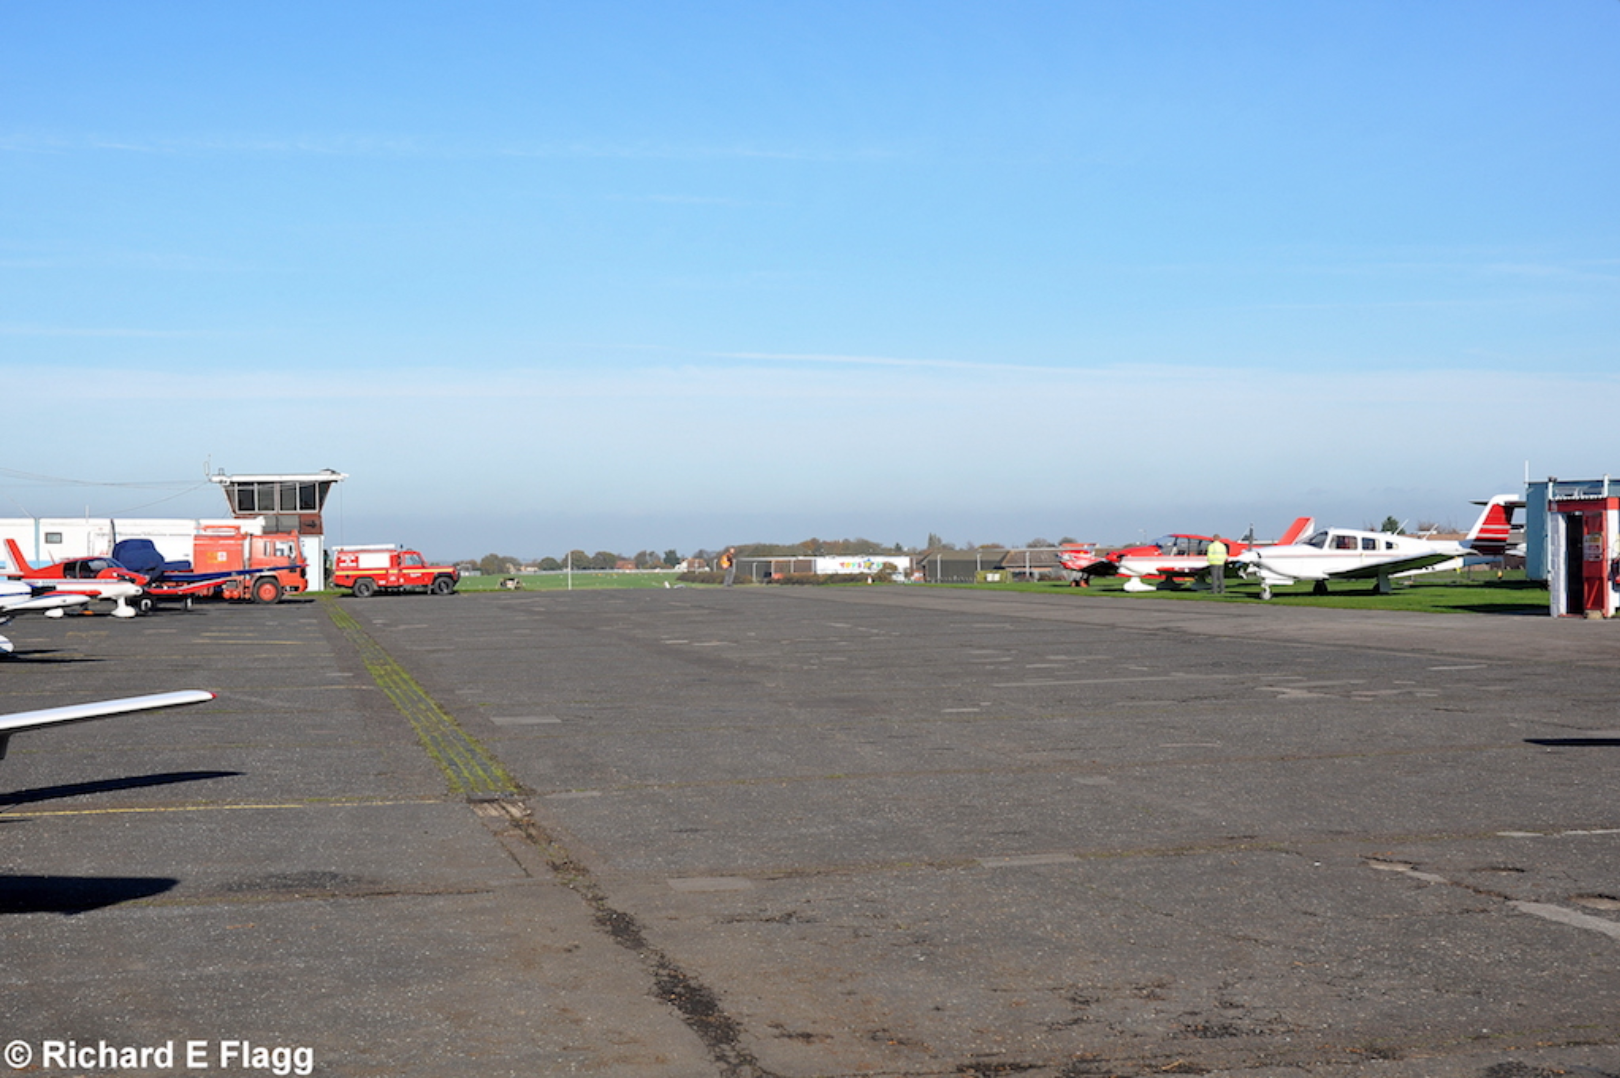 005Aircraft Parking Apron - 16 November 2013.png